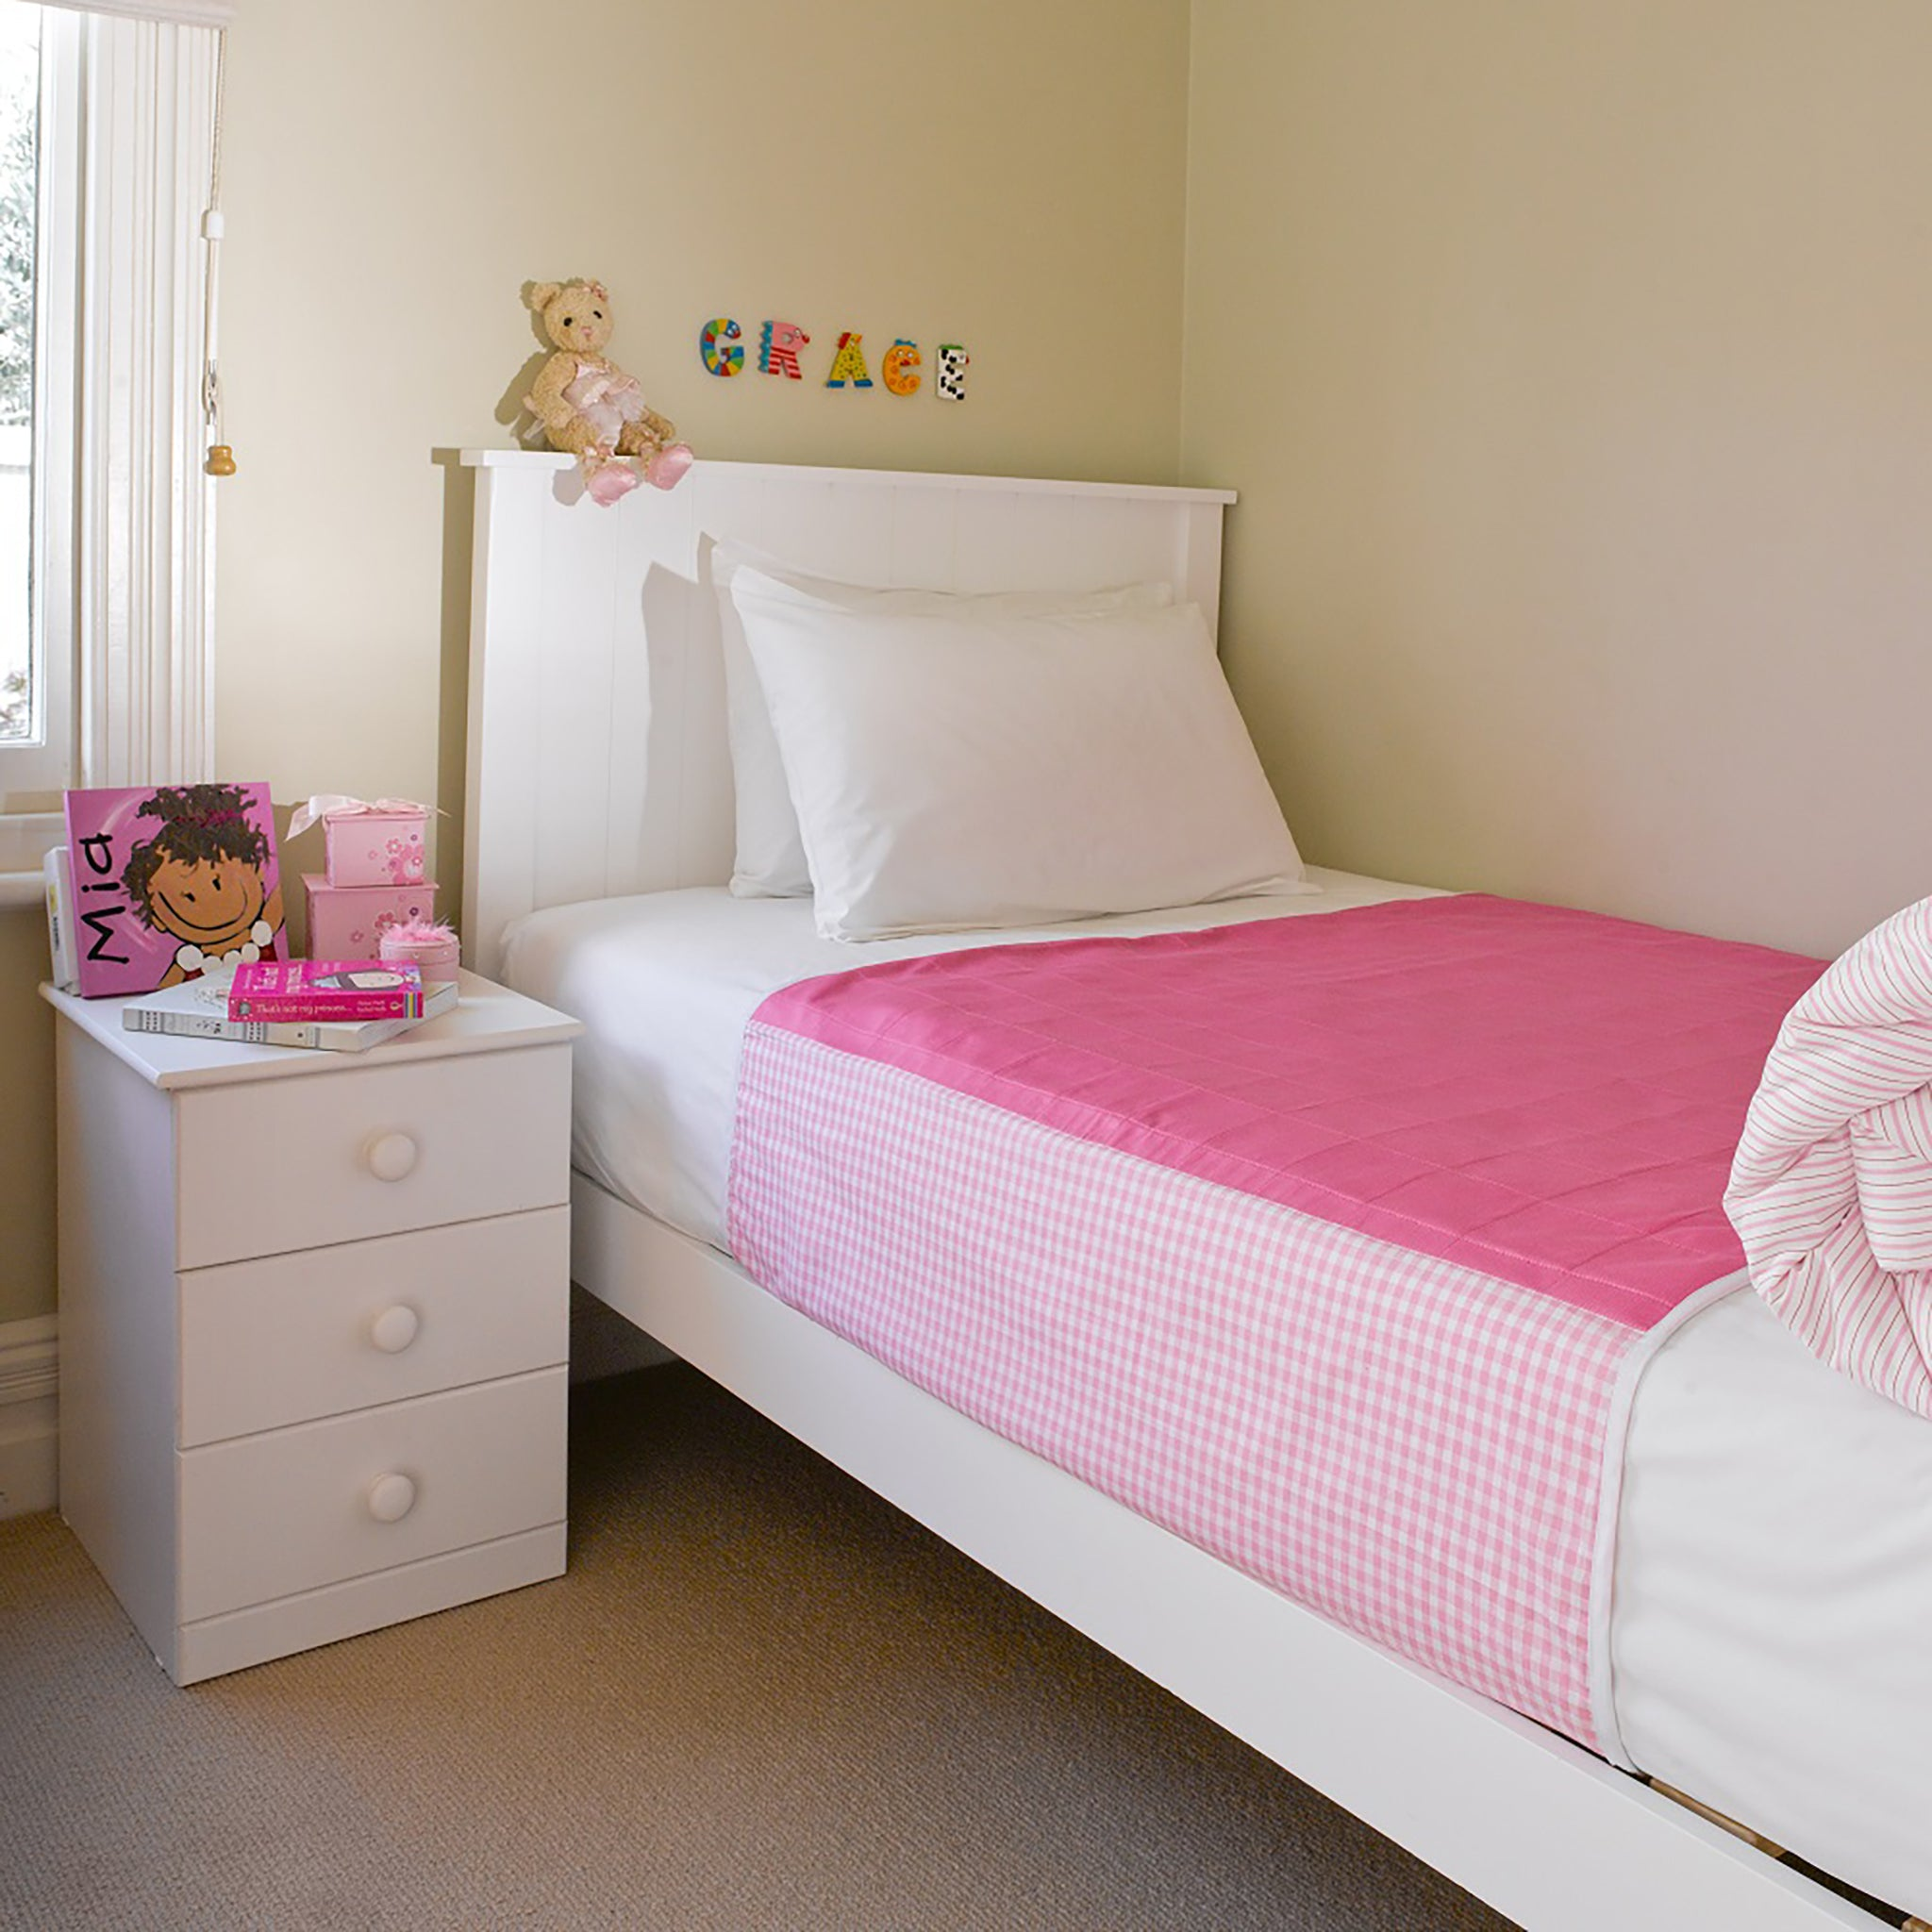 Brolly Sheet Bed Pad With Wings   Single   Pink